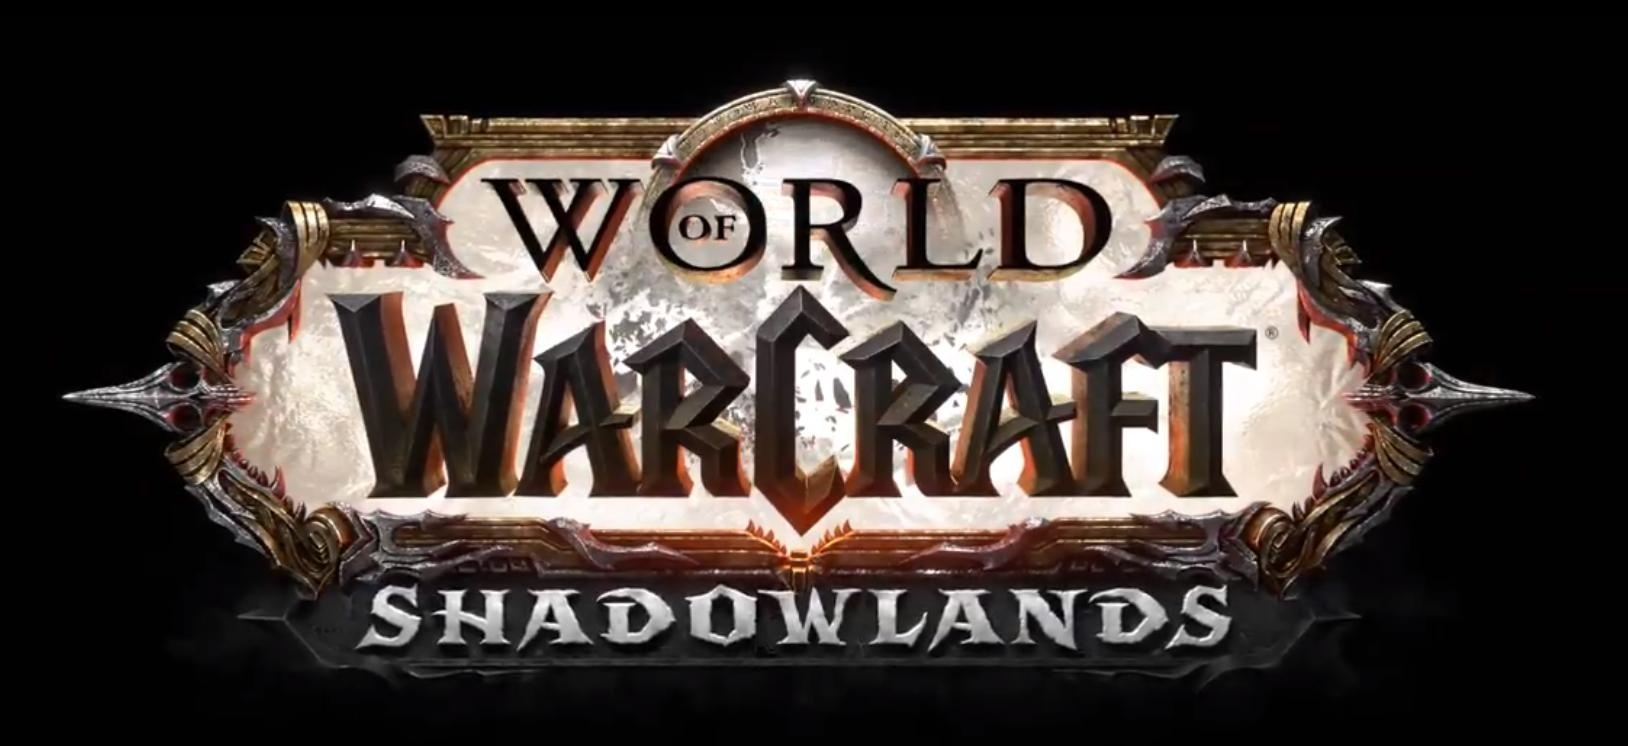 New Wow Expansion 2020.New World Of Warcraft Expansion Revealed Shadowlands